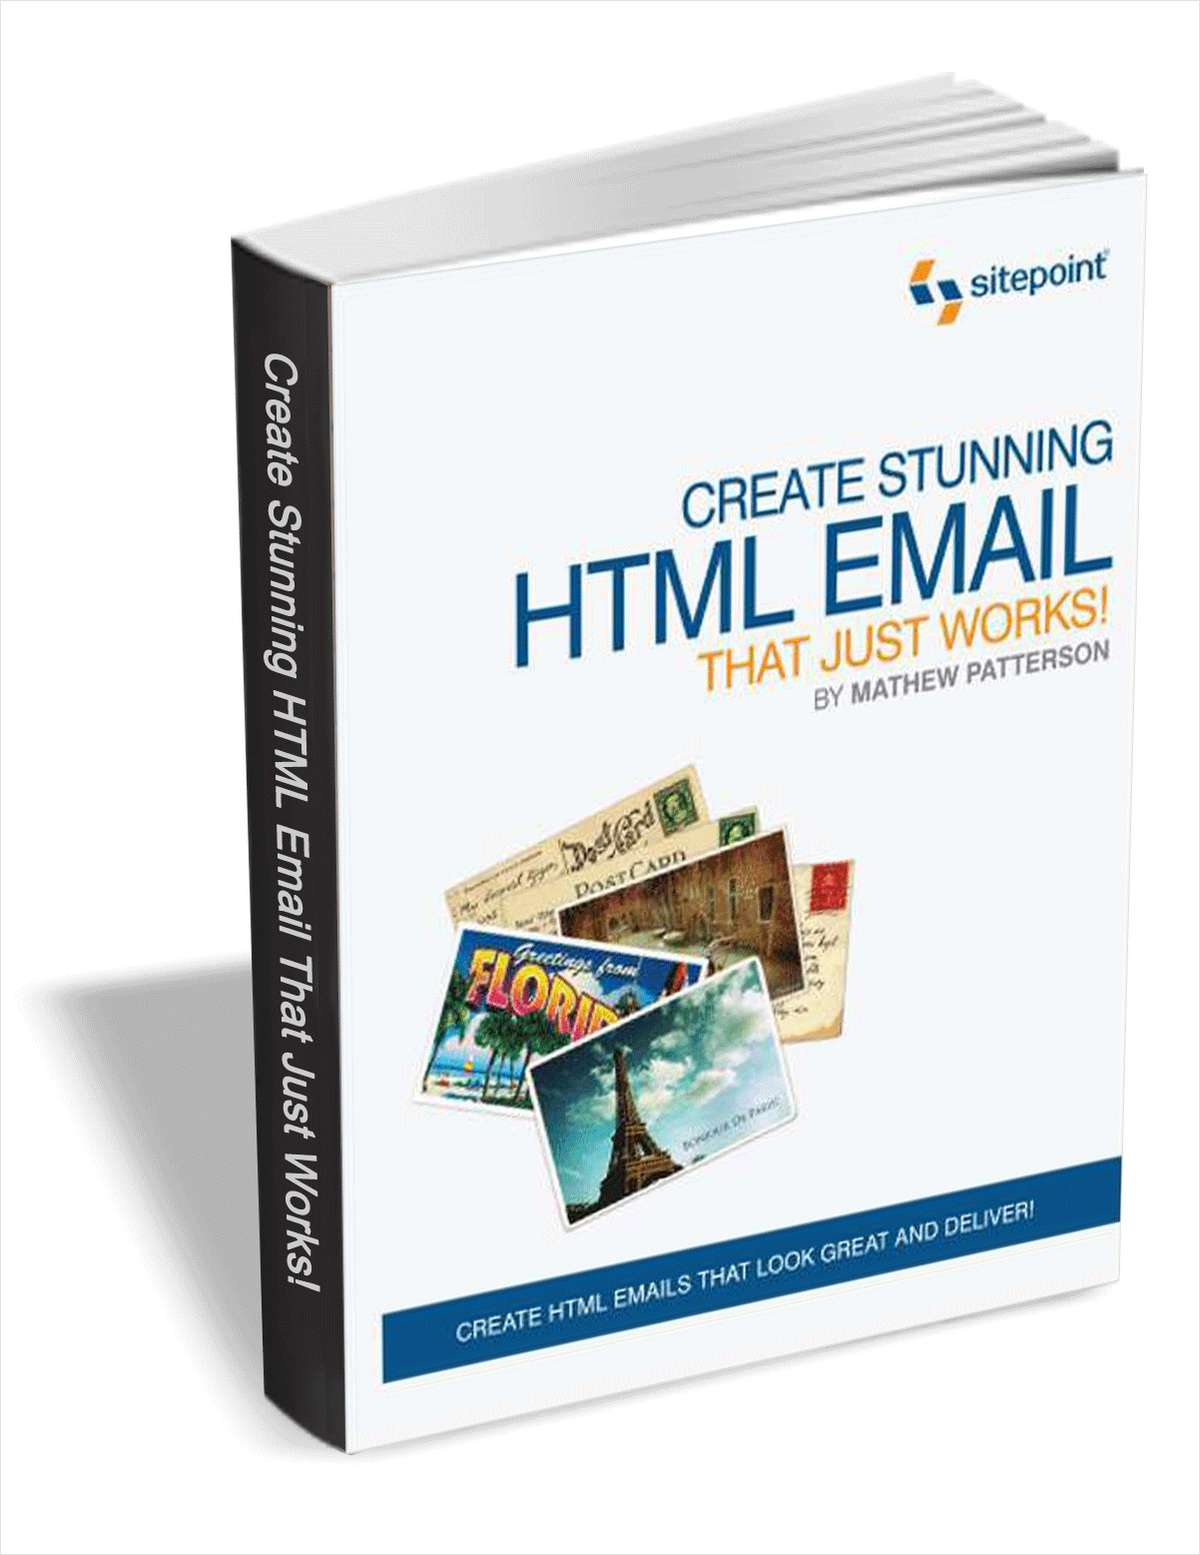 Create Stunning HTML Email That Just Works! ($29 Value FREE For a Limited Time)